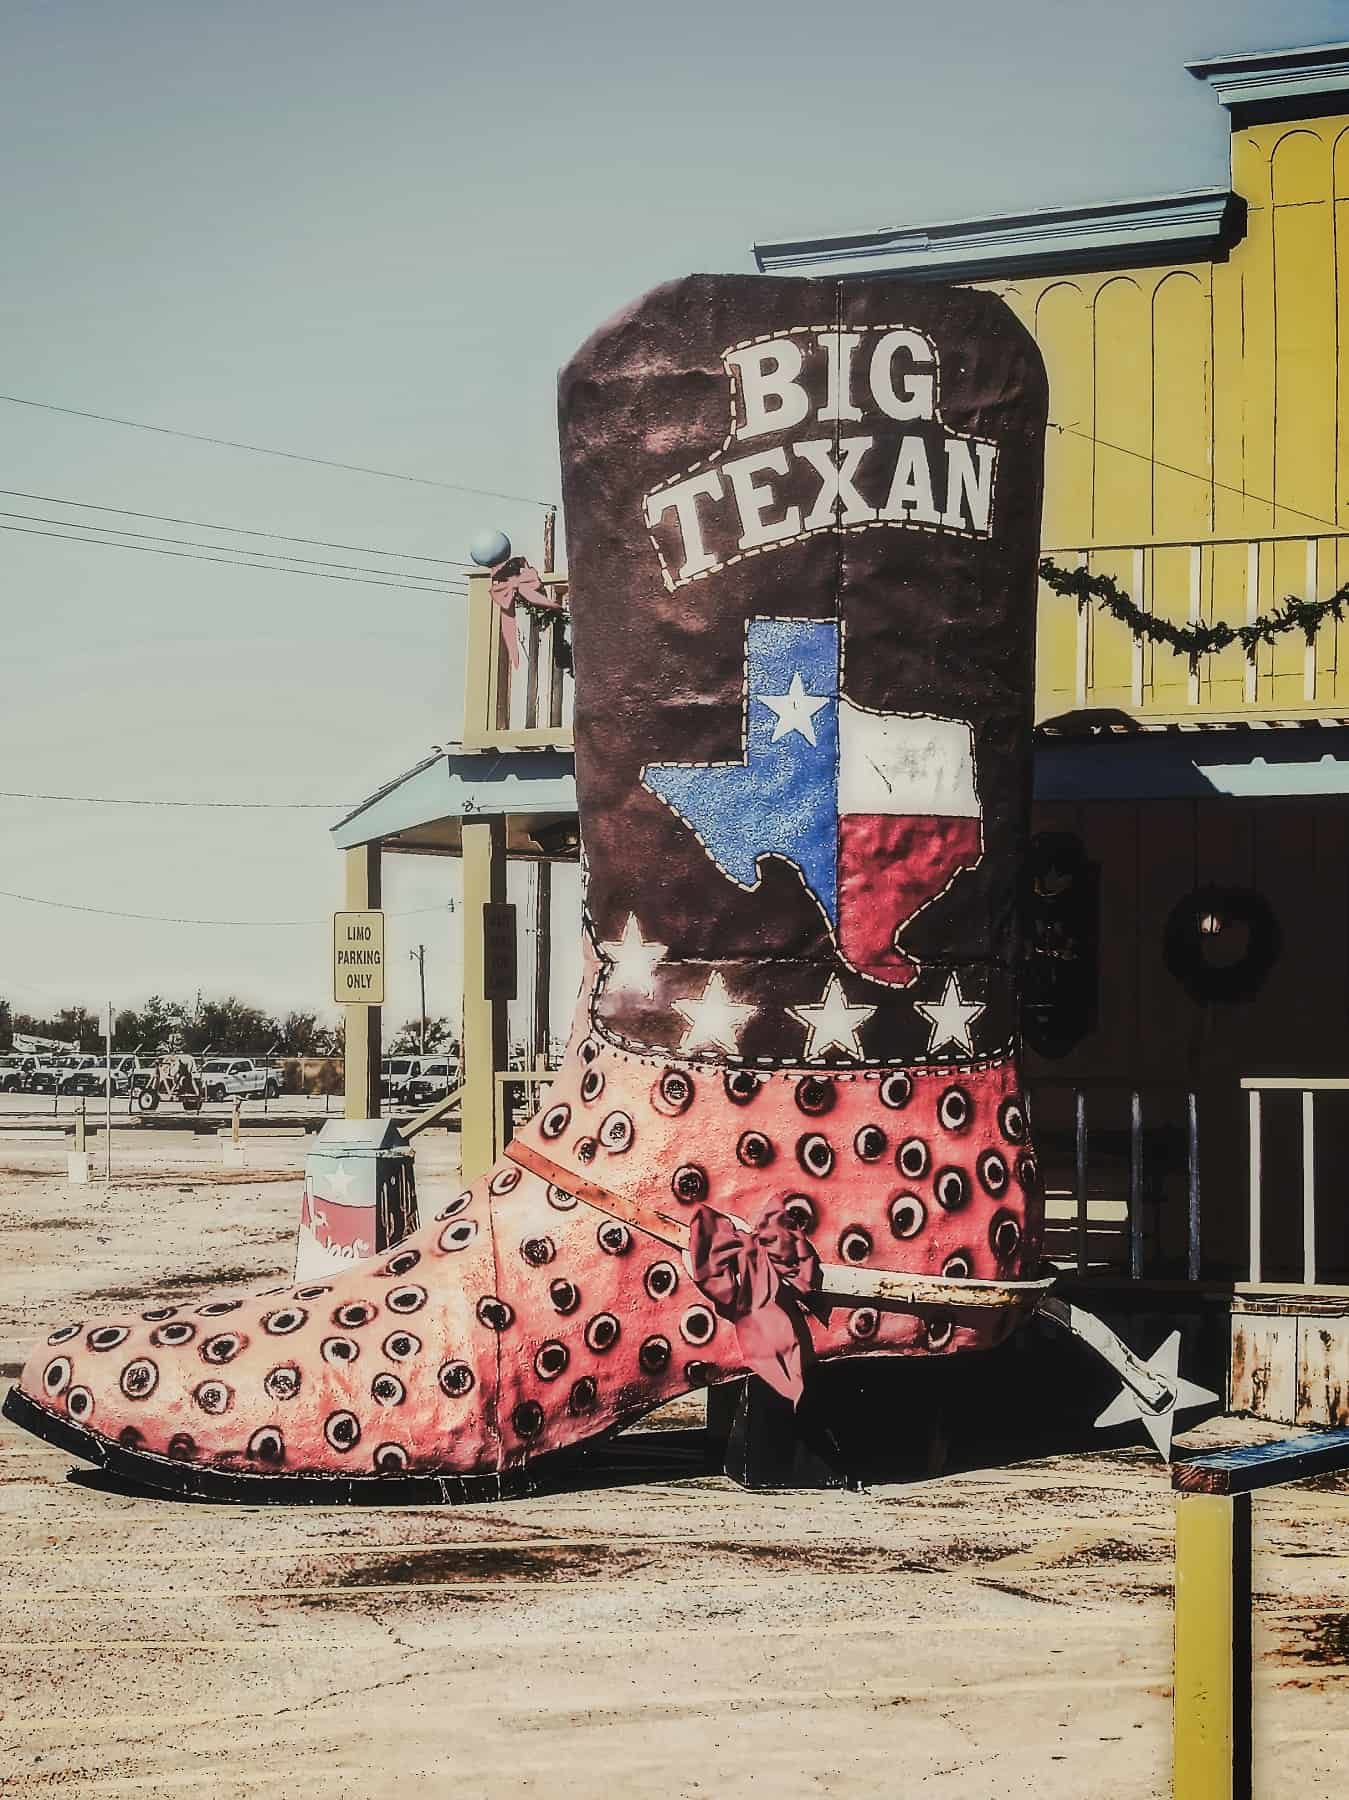 Visiting The Lone Star State? Plan Your Next Holiday Trip to Texas